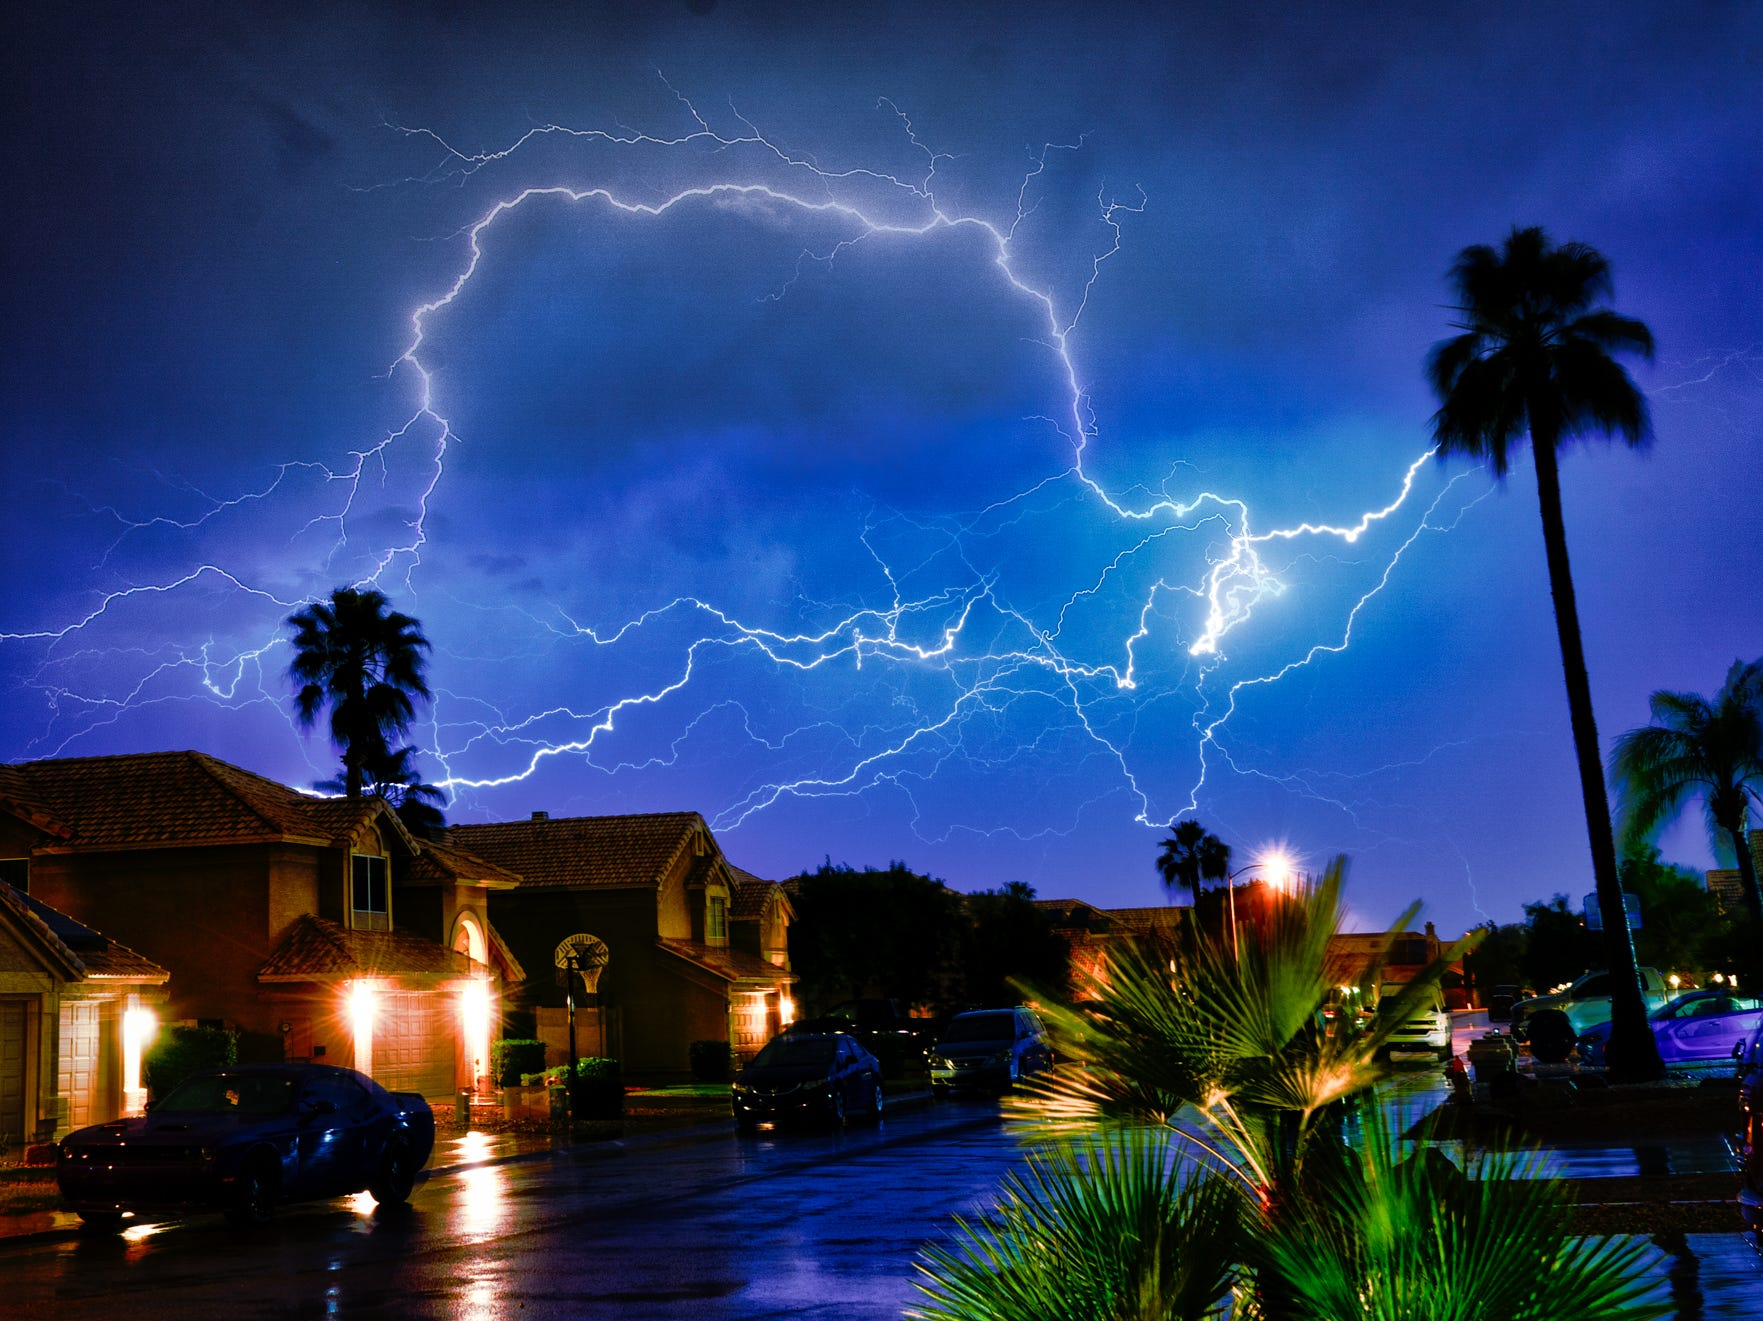 The sky lights up with an incredible lightning show in our neighborhood.